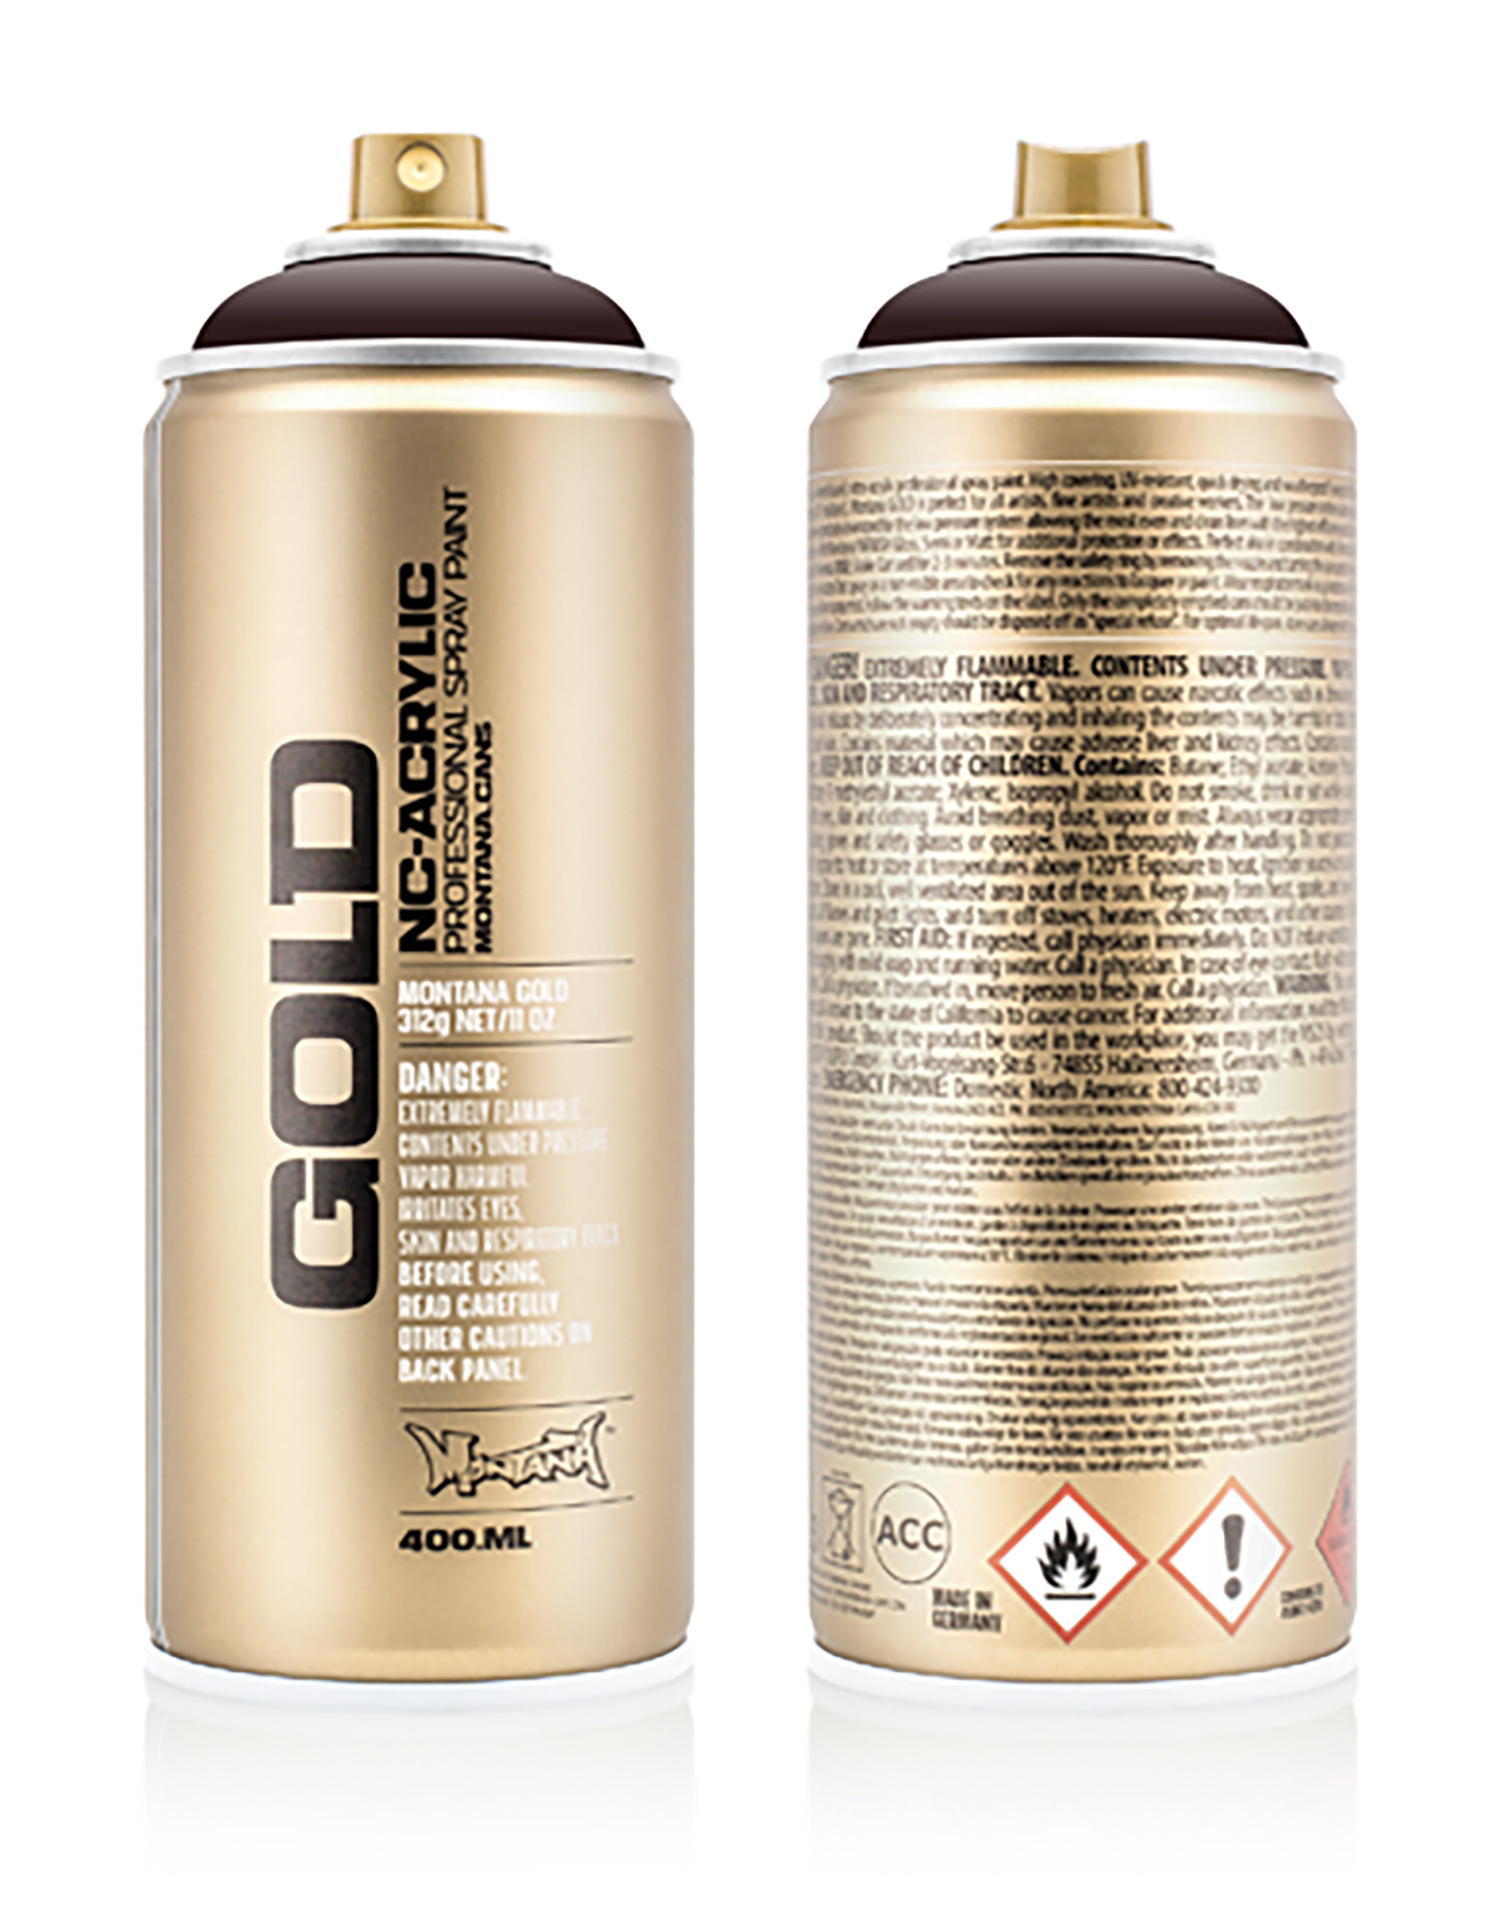 MONTANA-GOLD-SPRAY-400ML-G-8085